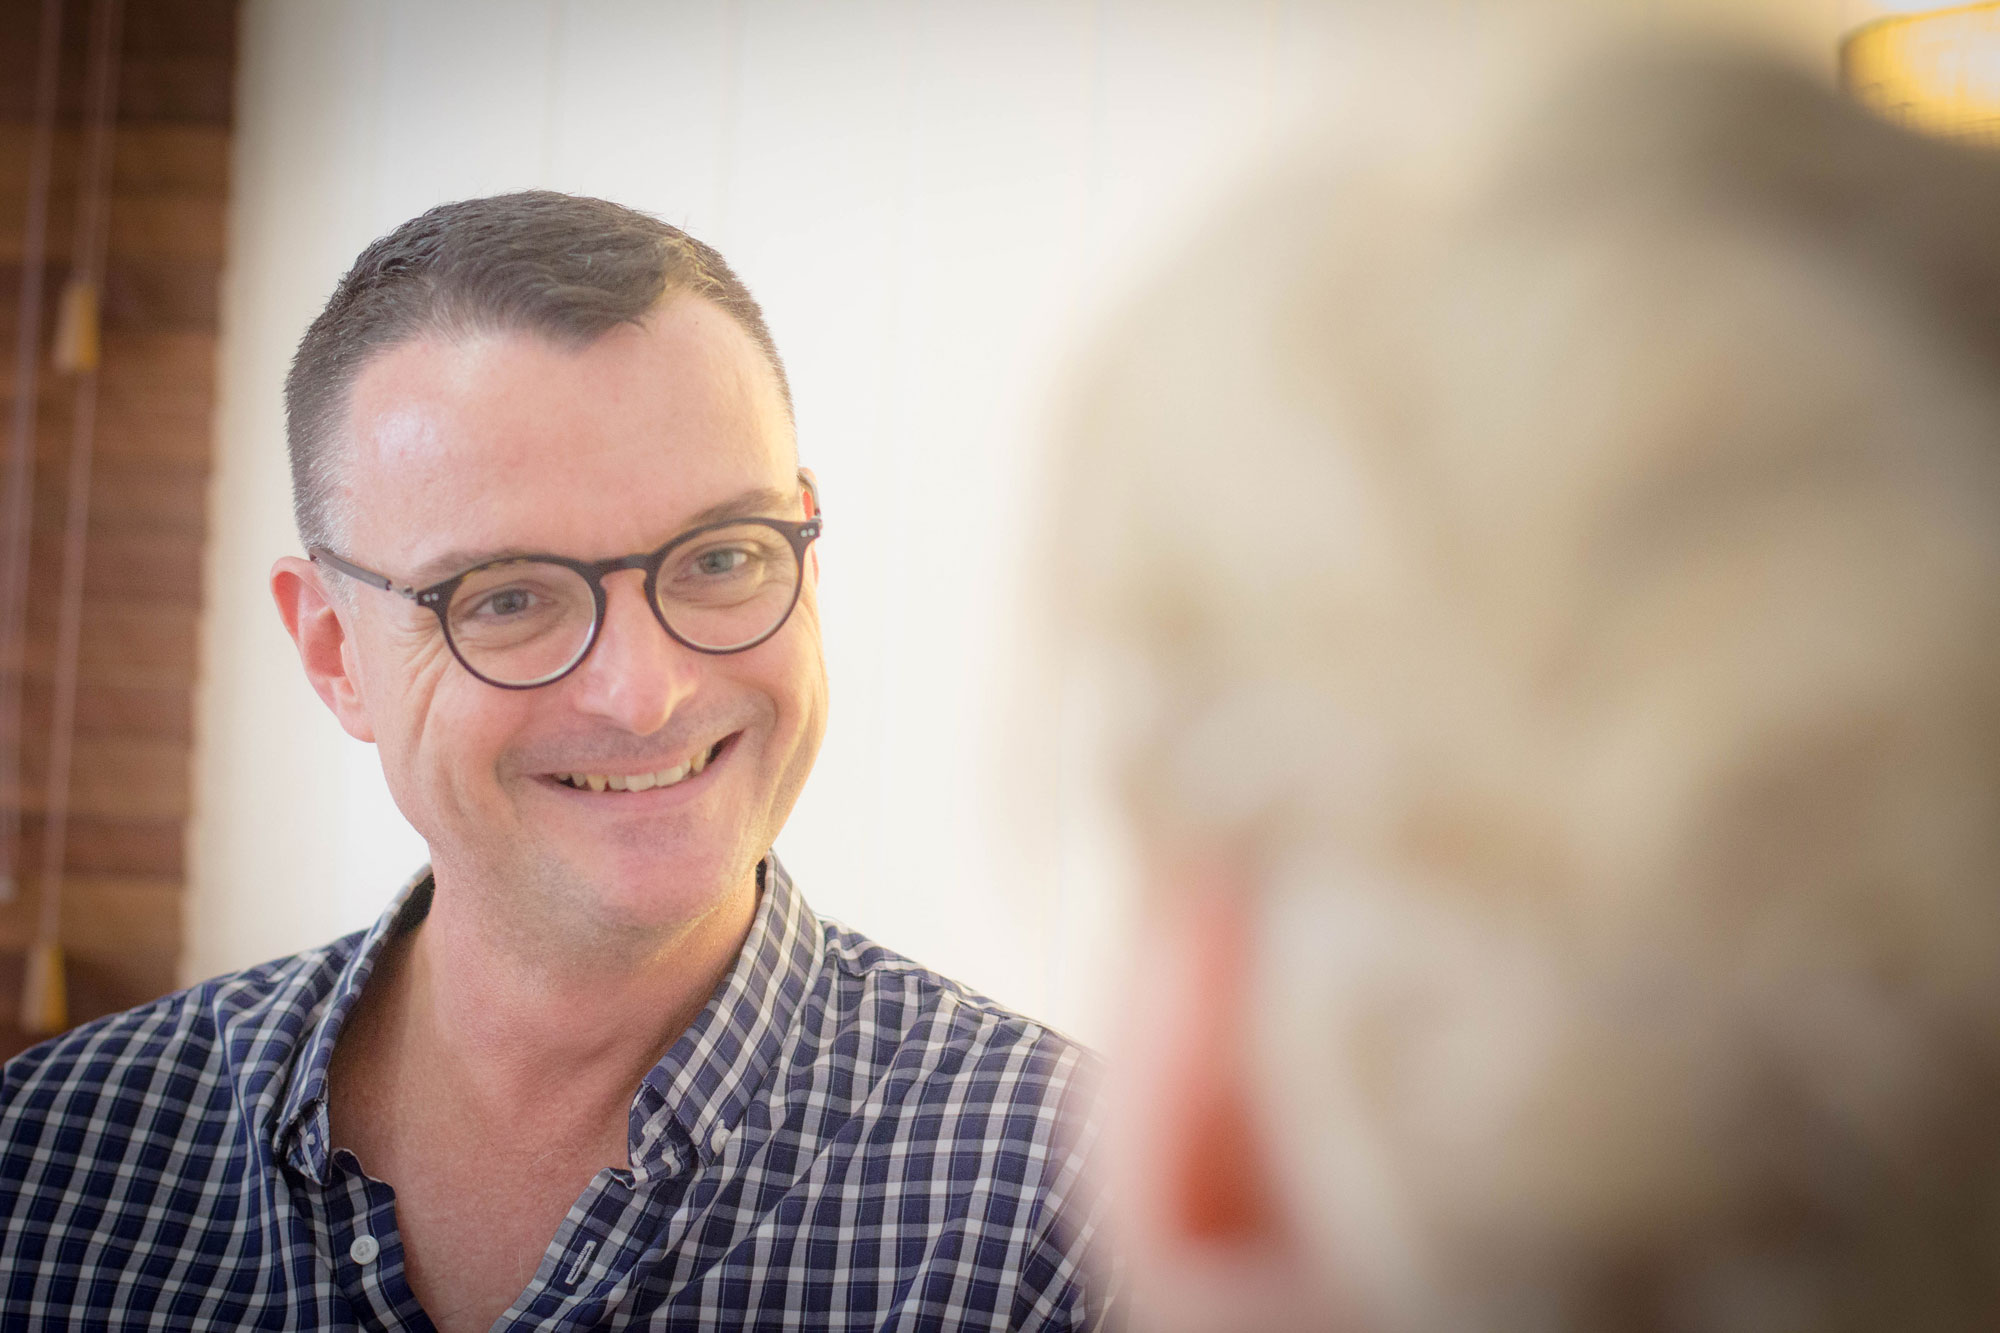 For Brisbane acupuncture with Peter Kington call (07) 3367 1150 for fertility acupuncture, IVF acupunctur e, pregnancy acupuncture and general acupuncture care.